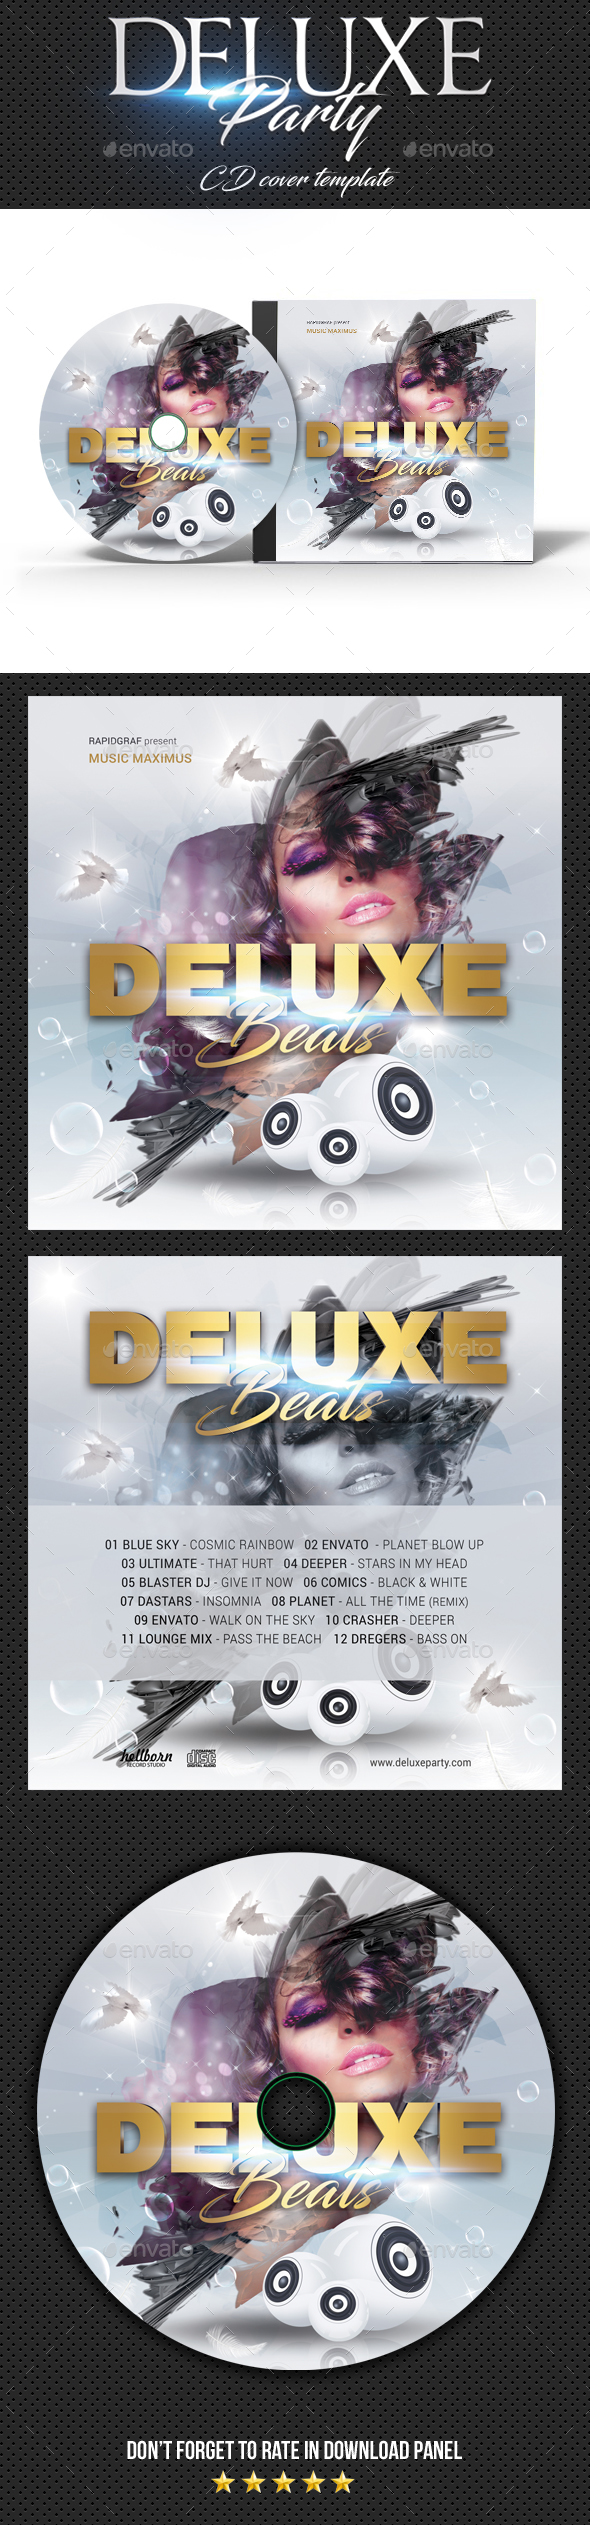 GraphicRiver Deluxe Dj Party CD Cover 2 20352855